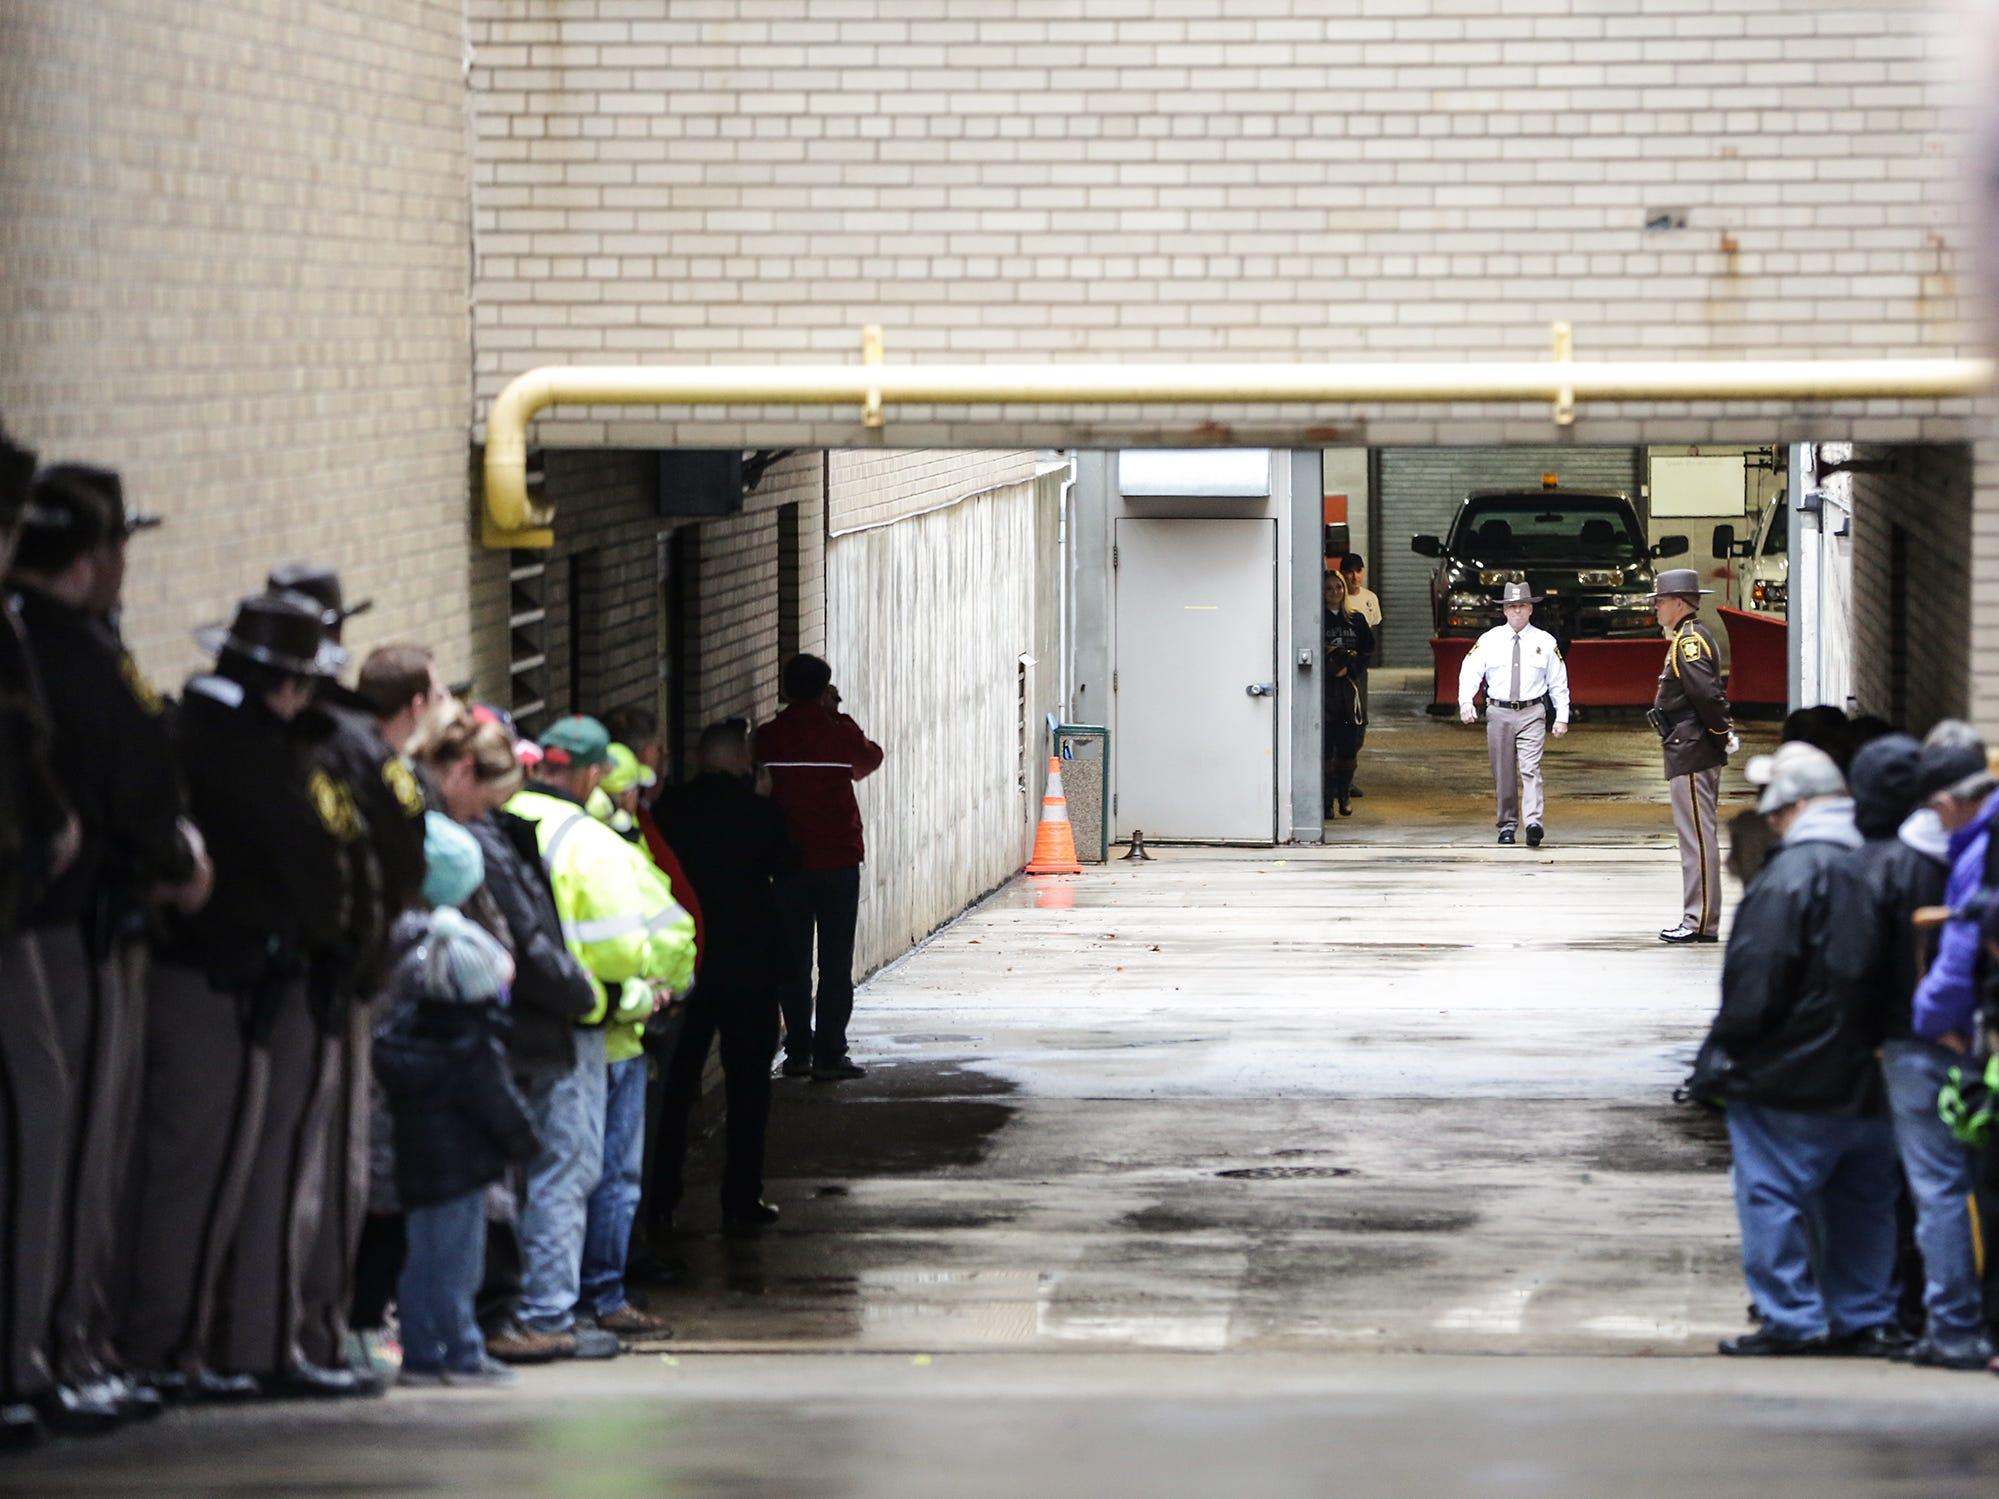 Fond du Lac County Sheriff Mick Fink walks out of the sheriff's office building for the last time as sheriff Monday, January 7, 2019 as he does the ceremonial ramp walk where sheriff's office personel that retire walk up the ramp leading to an underground garage to greet well wishers. Fink retired from the position of Fond du Lac County Sheriff after serving for 12 years. Submitted by Roxanne Abler/USA TODAY NETWORK-Wisconsin